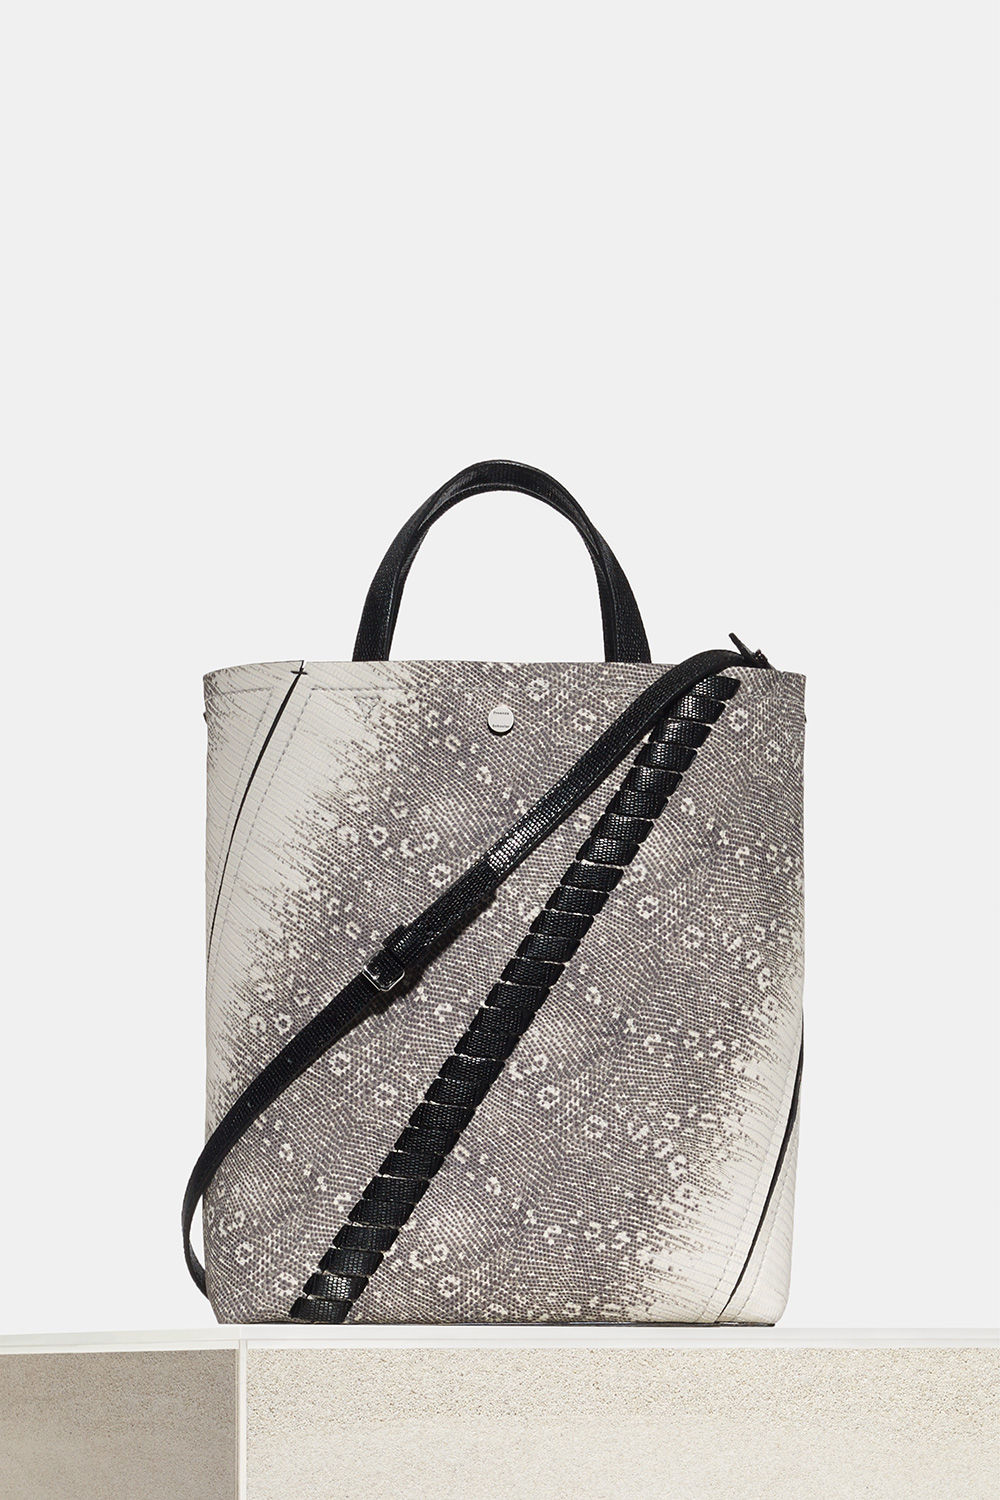 proenza schouler spring 2018 roccia and black embossed lizard hex tote bag